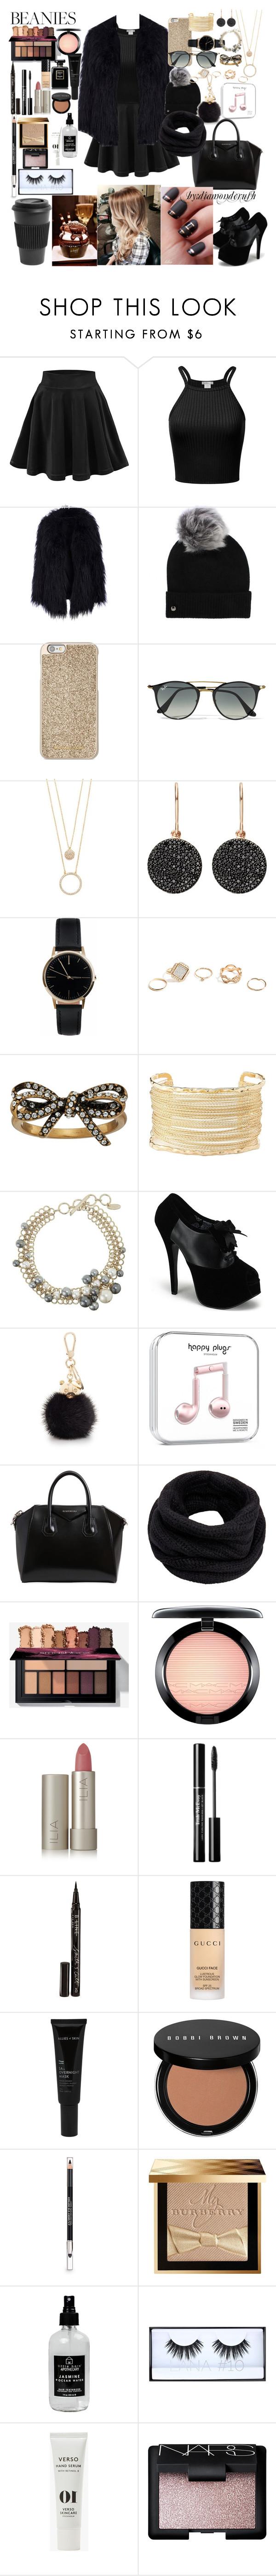 """""""Fluffy Beanie"""" by diamondcrush ❤ liked on Polyvore featuring UGG, Michael Kors, Ray-Ban, Kate Spade, Astley Clarke, Freedom To Exist, GUESS, Marc Jacobs, Charlotte Russe and Lanvin"""